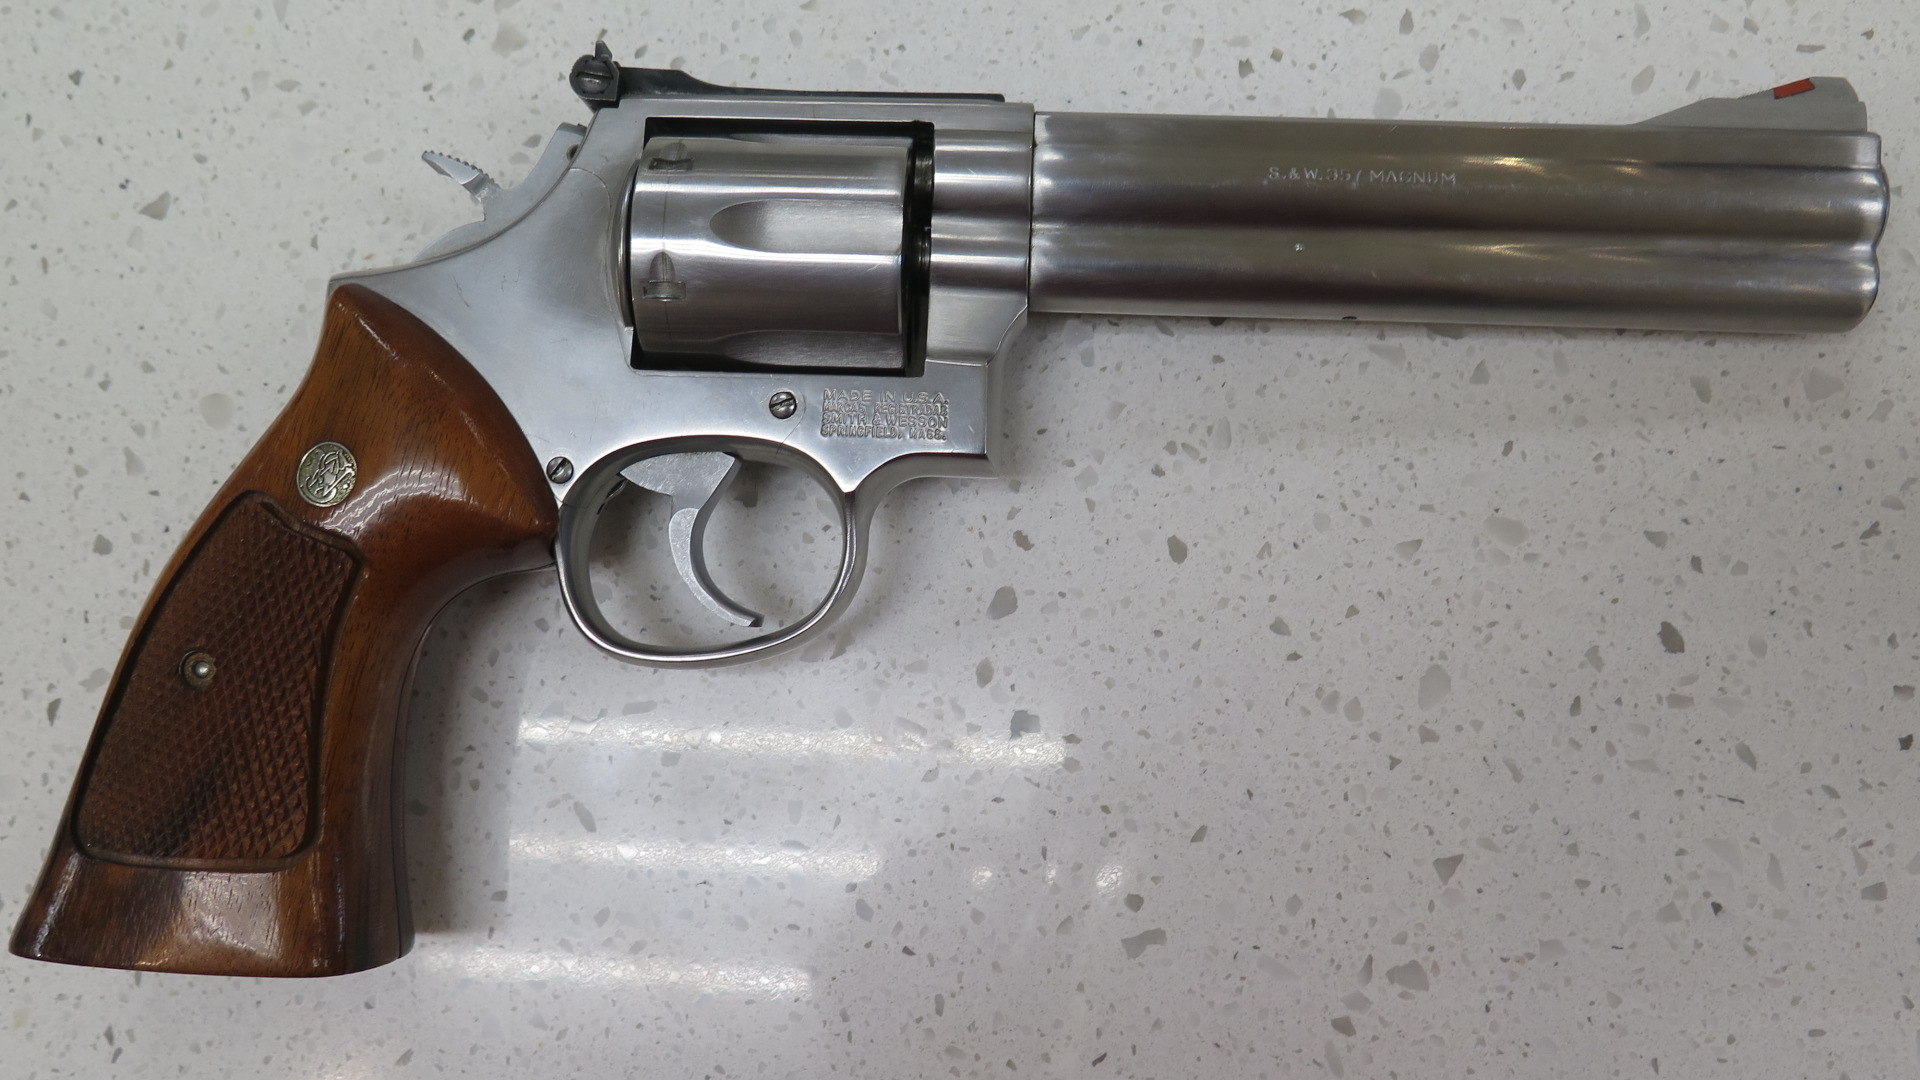 CONSIGNED Smith & Wesson 686-1 357 MAG 686-1 Revolver Buy